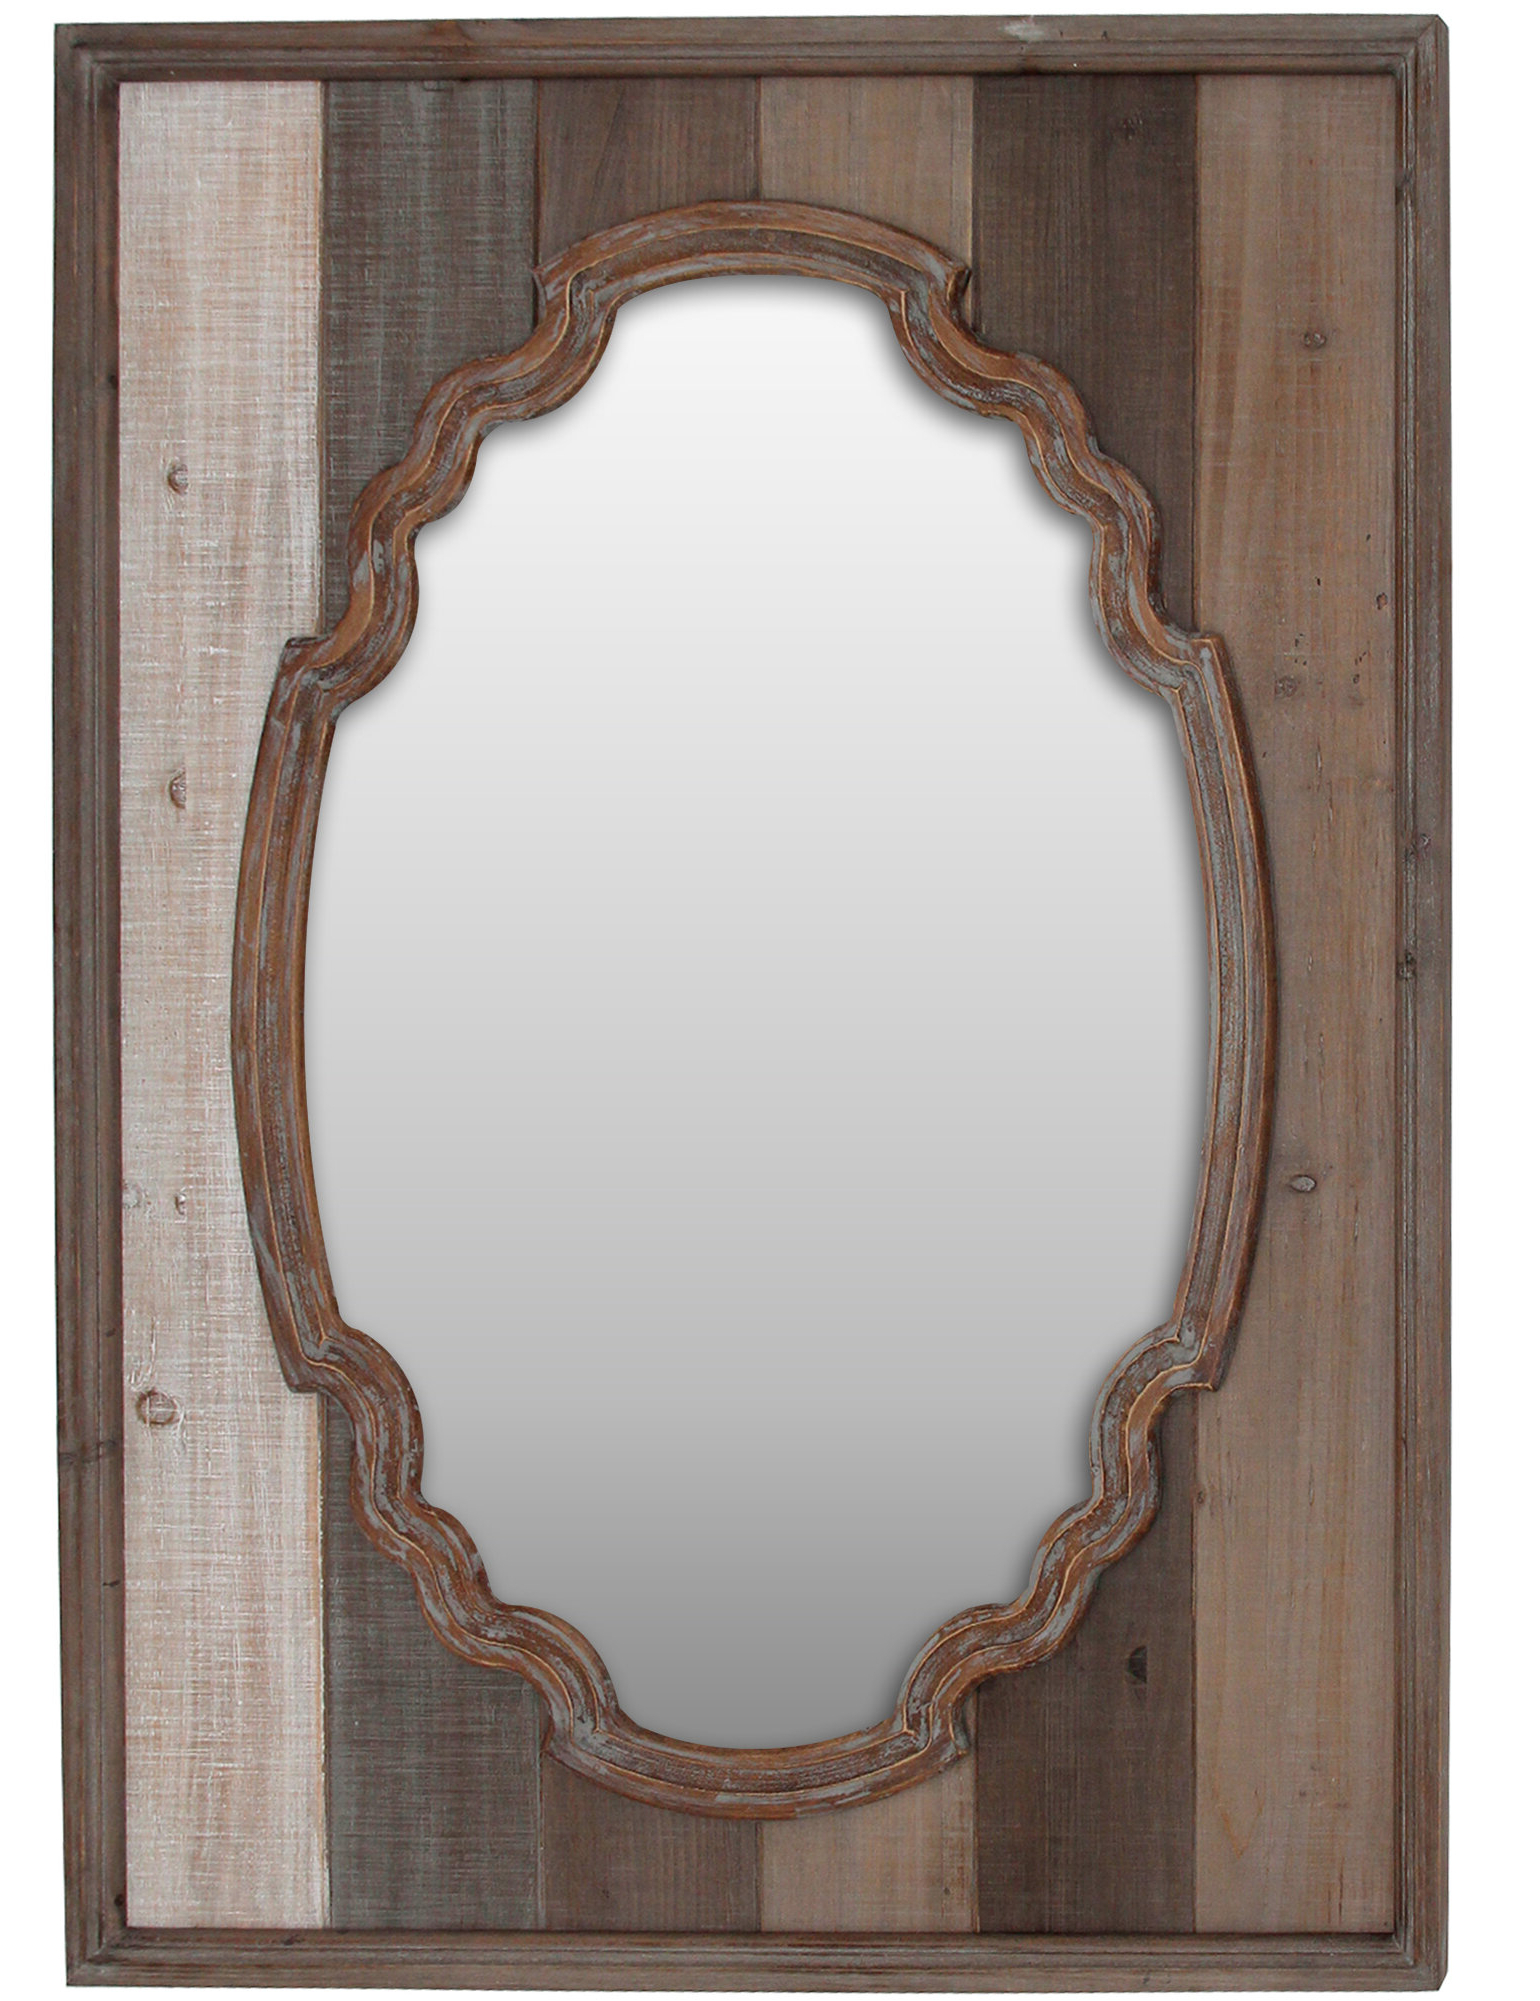 2019 Jaylyn Elegant Farmstead Rustic Accent Mirror For Padang Irregular Wood Framed Wall Mirrors (View 6 of 20)